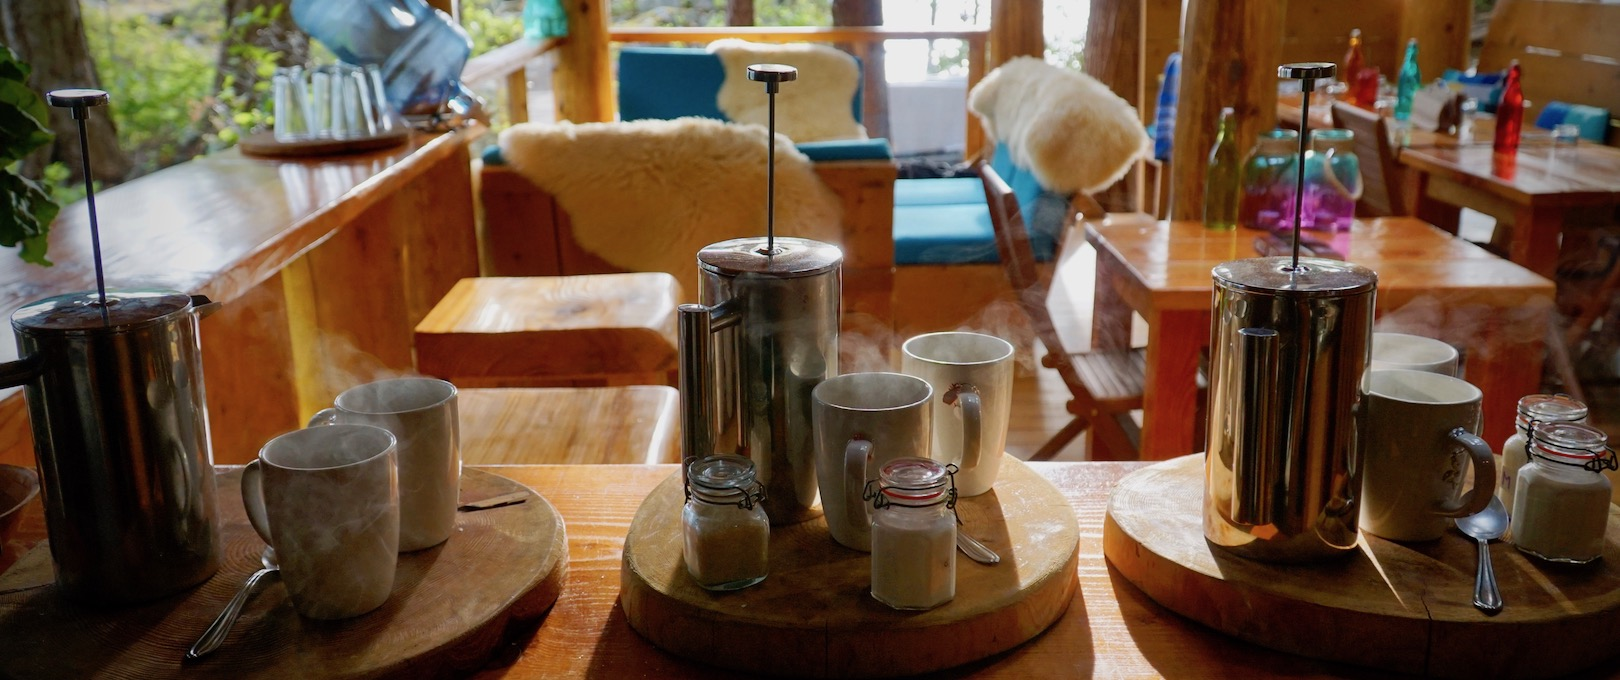 Three sets of french presses and cups of coffee at the Cabana Cafe